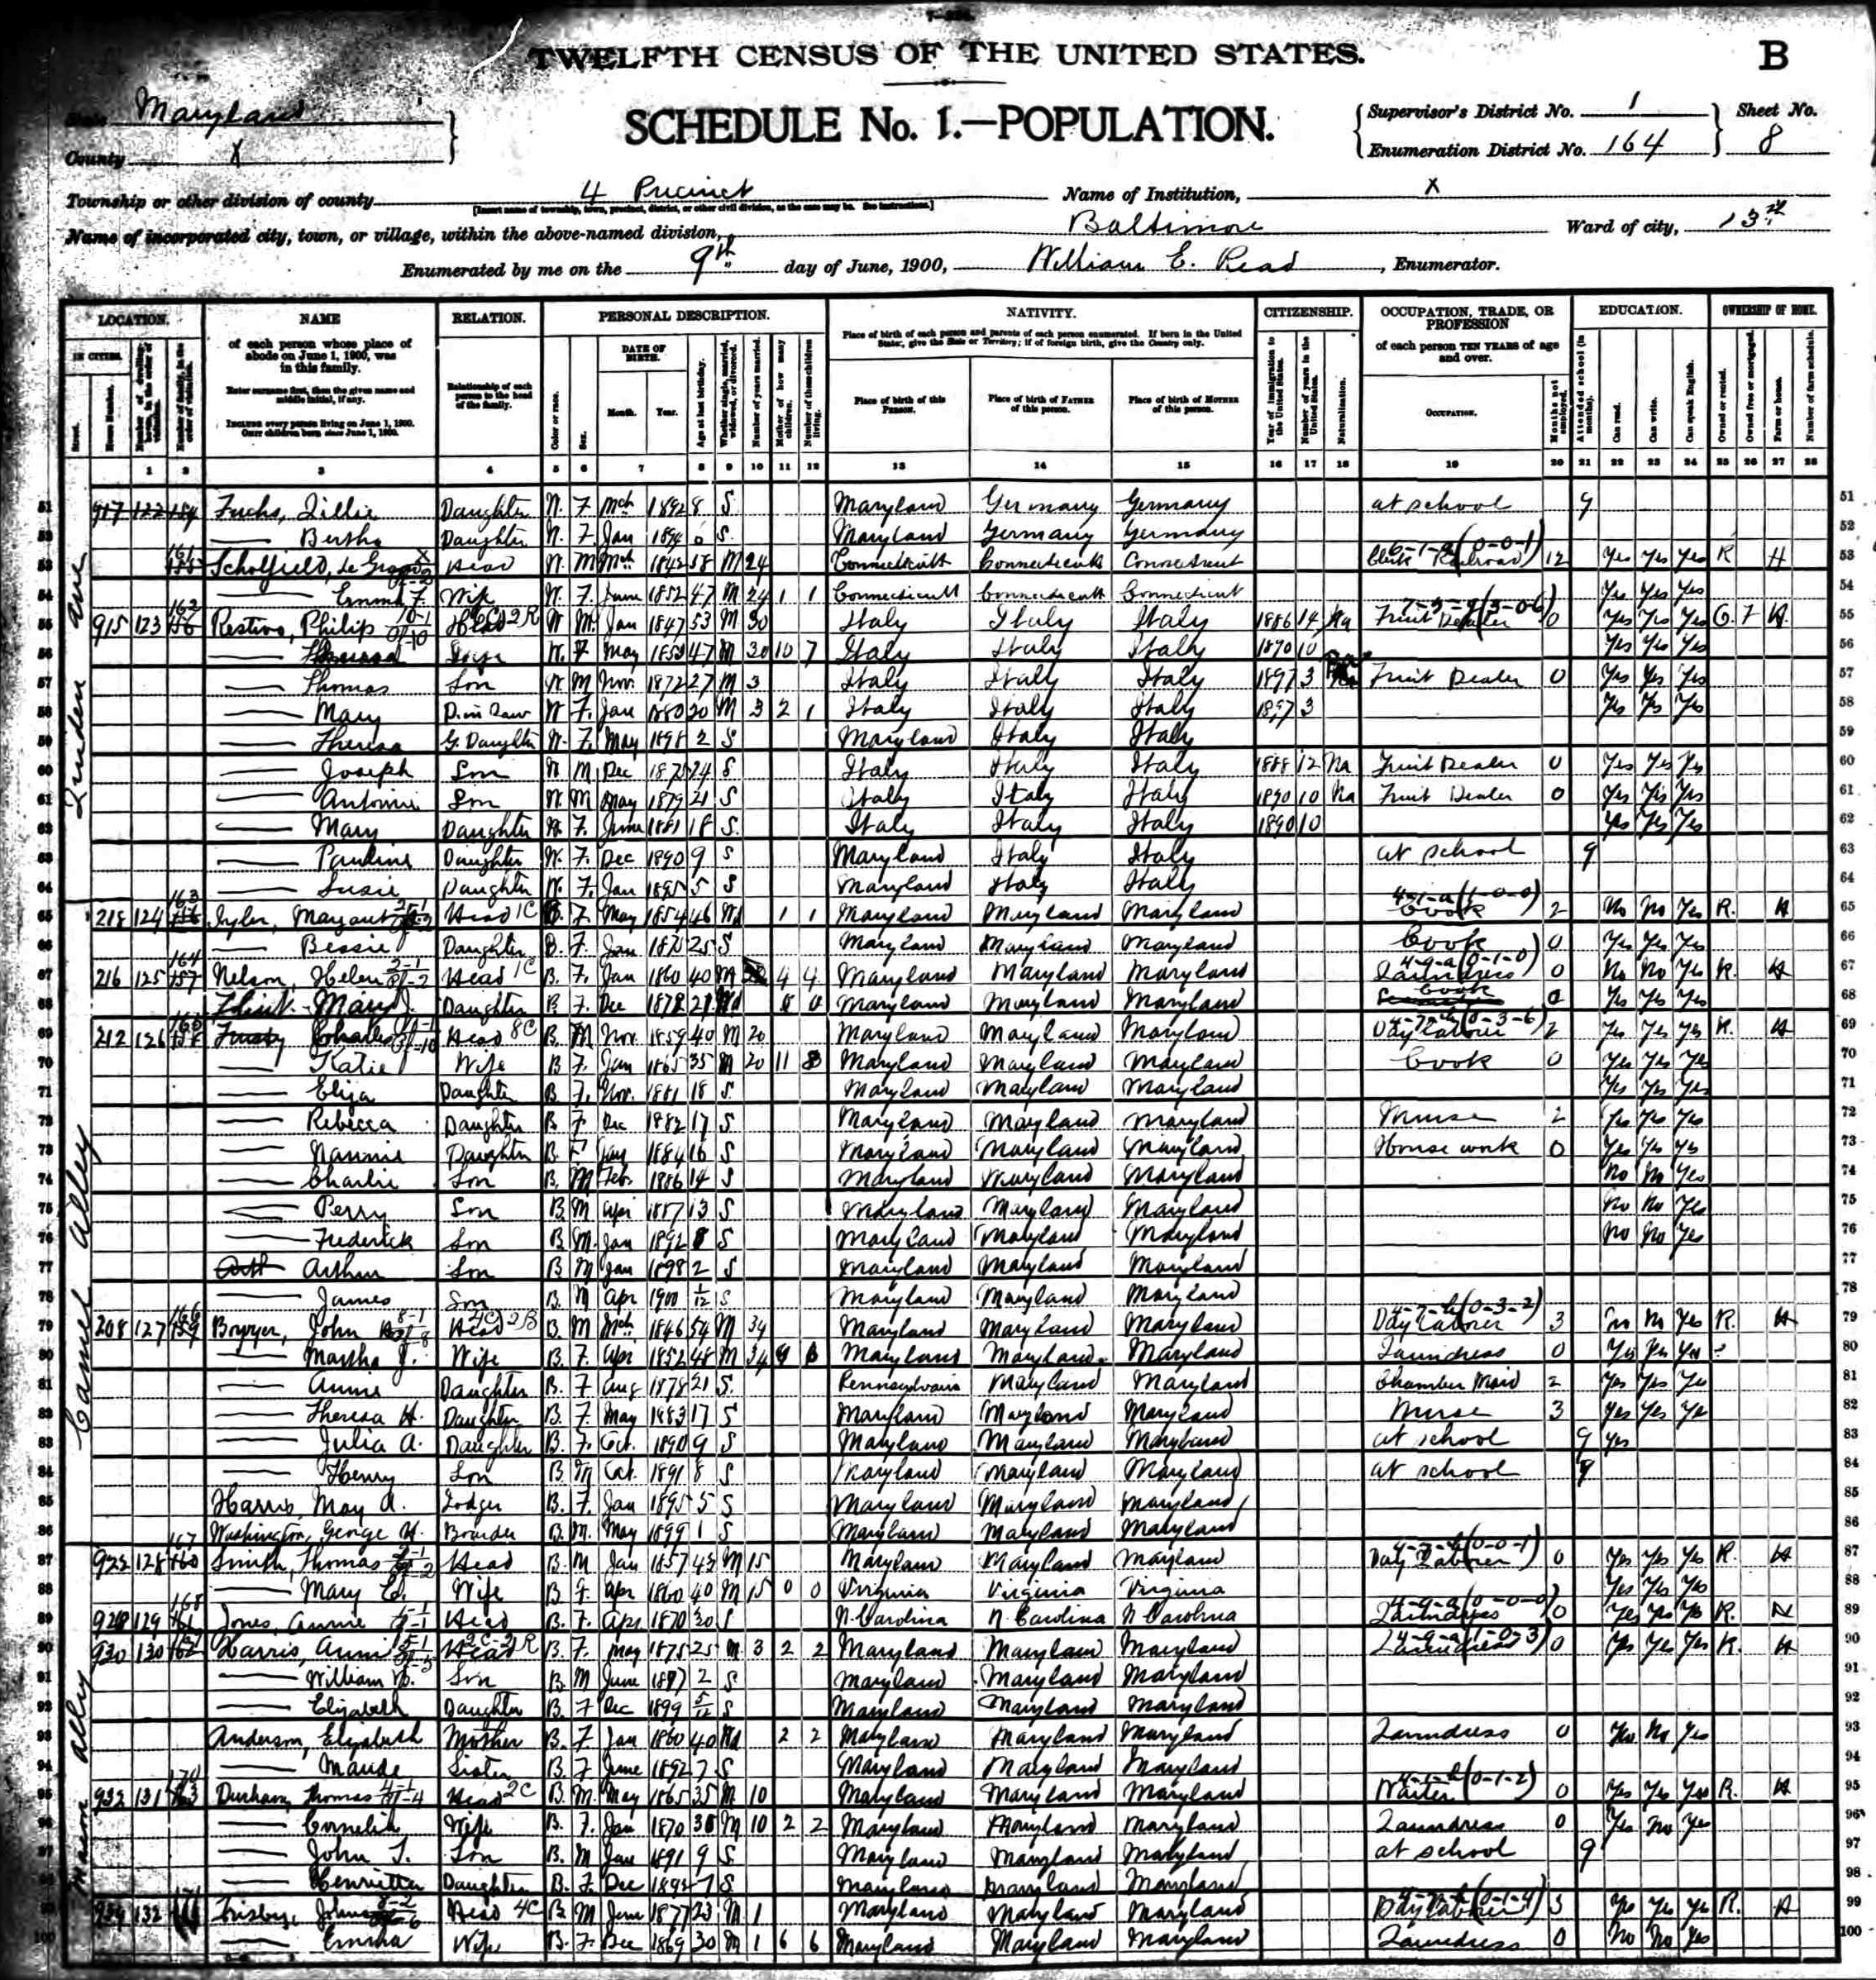 1900 U.S. Census record with Philip Restivo and family